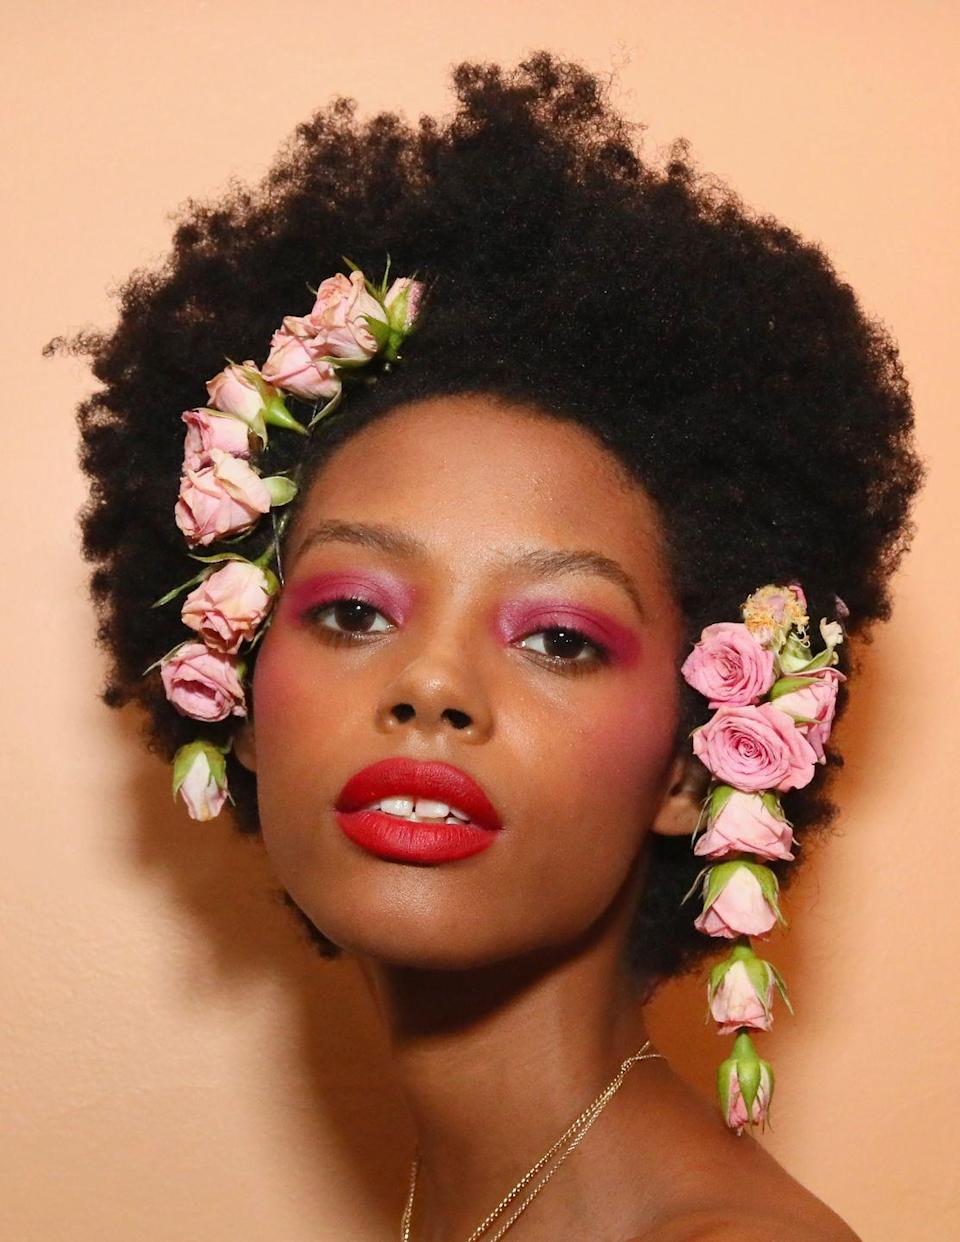 <p>Keep the romantic theme going with bold magenta eyes and scarlet lips. Just don't forget the fresh flowers in your hair.</p>